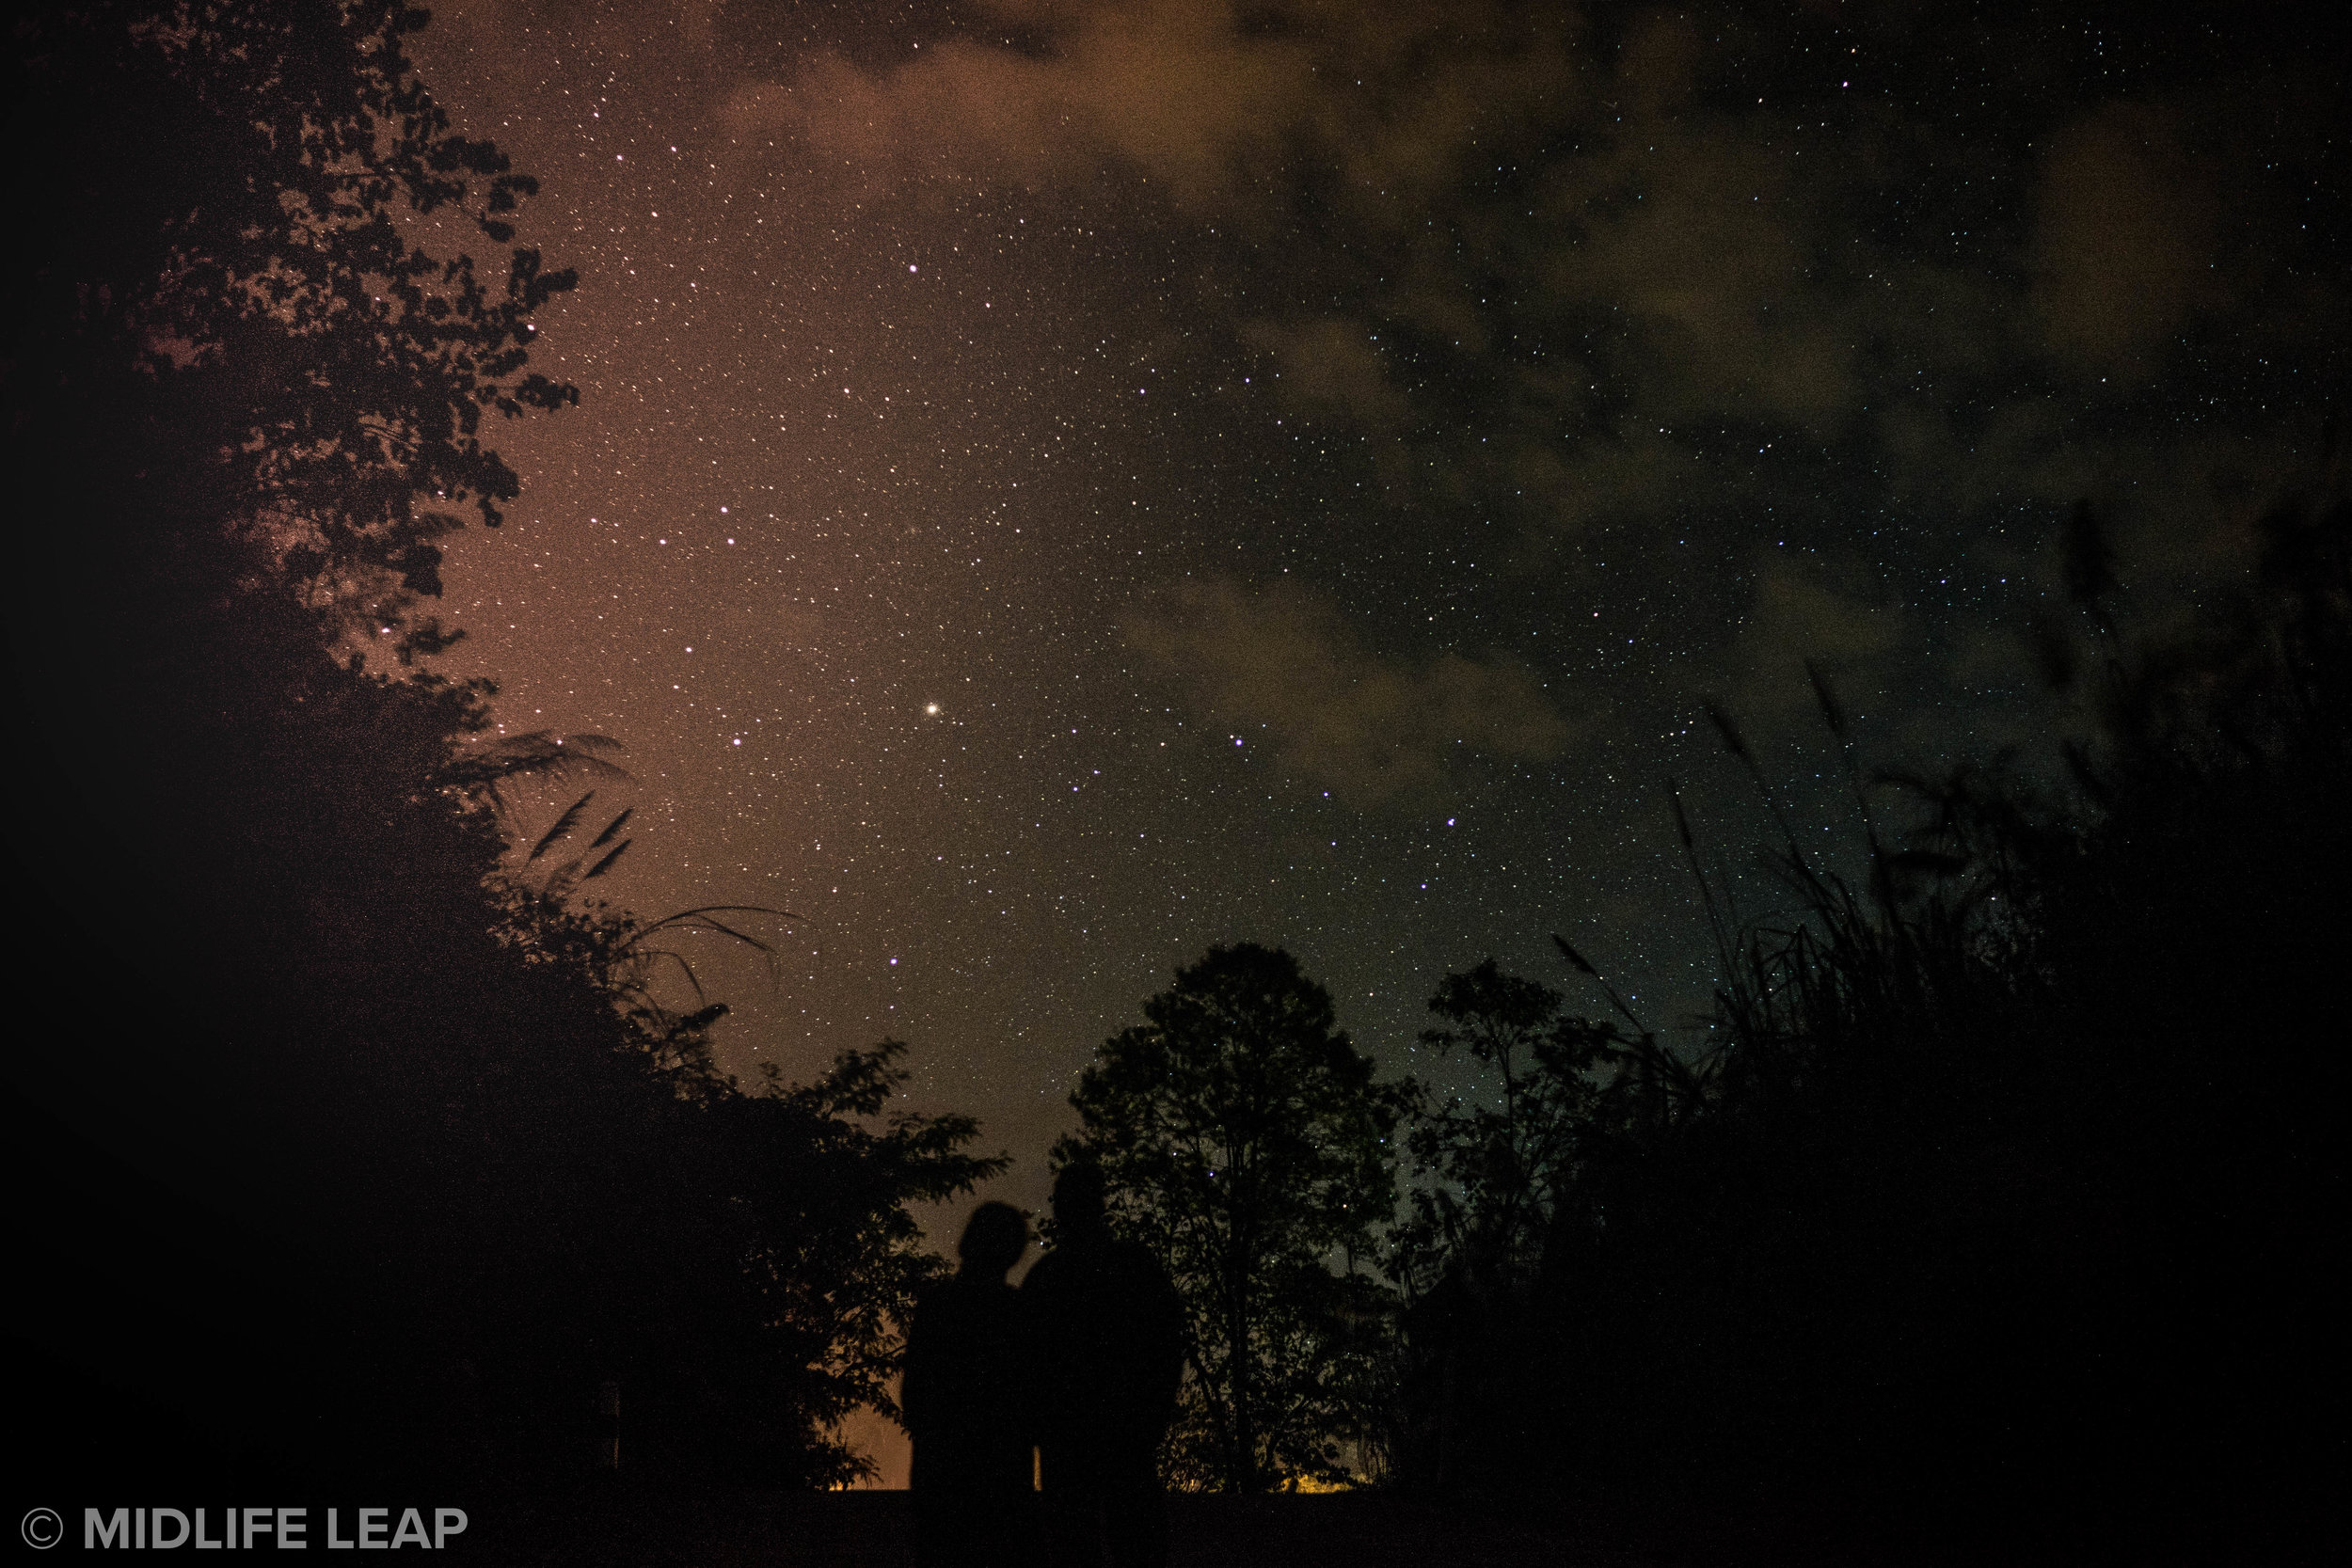 Attempting to capture the beautiful, starry sky